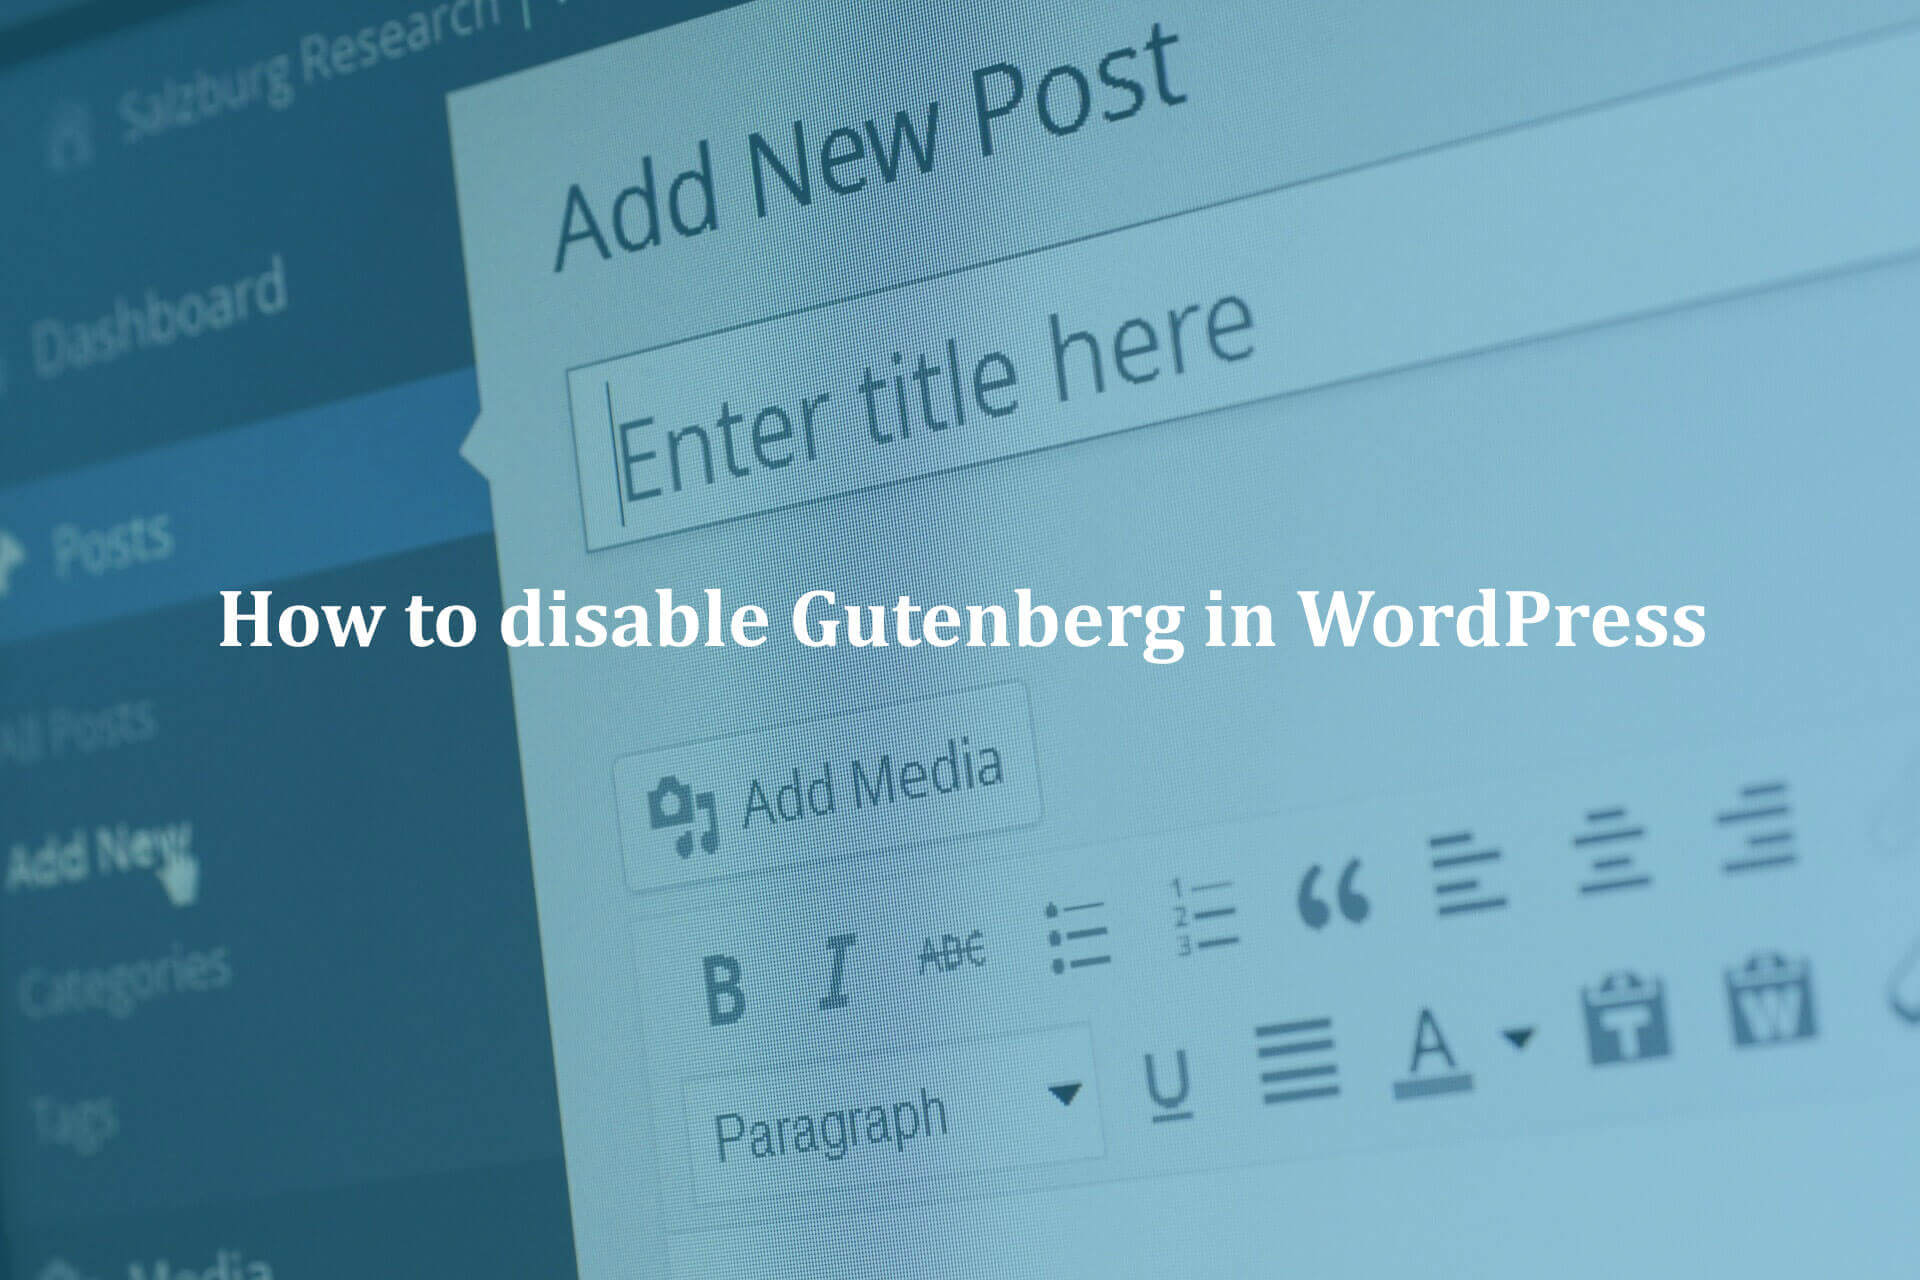 How-to-disable-Gutenberg-in-WordPress